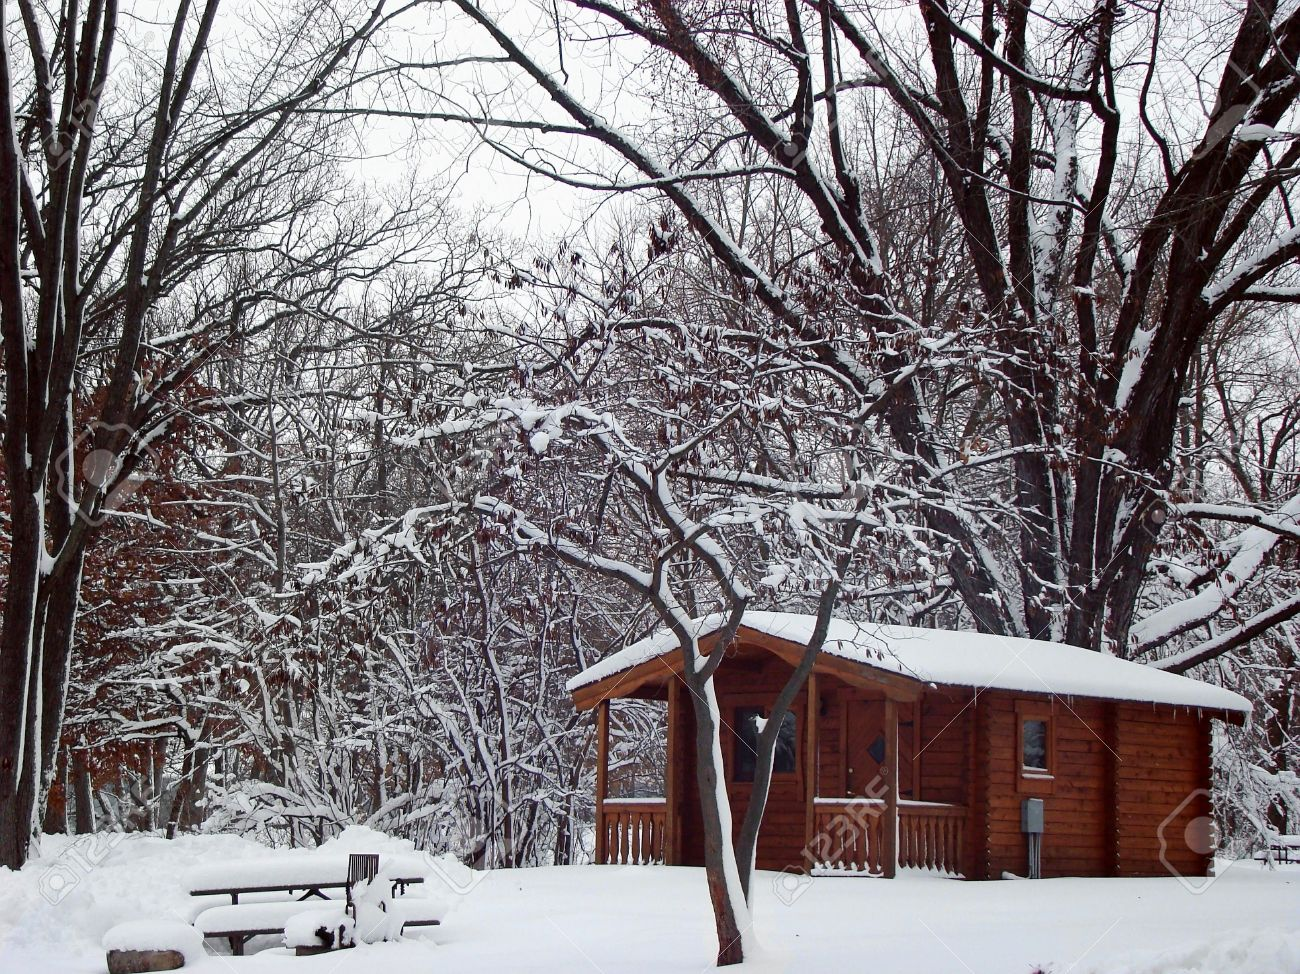 Log cabin in the woods winter - Stock Photography Of A Log Cabin In The Woods Snow Scenery Stock Photo 3816436